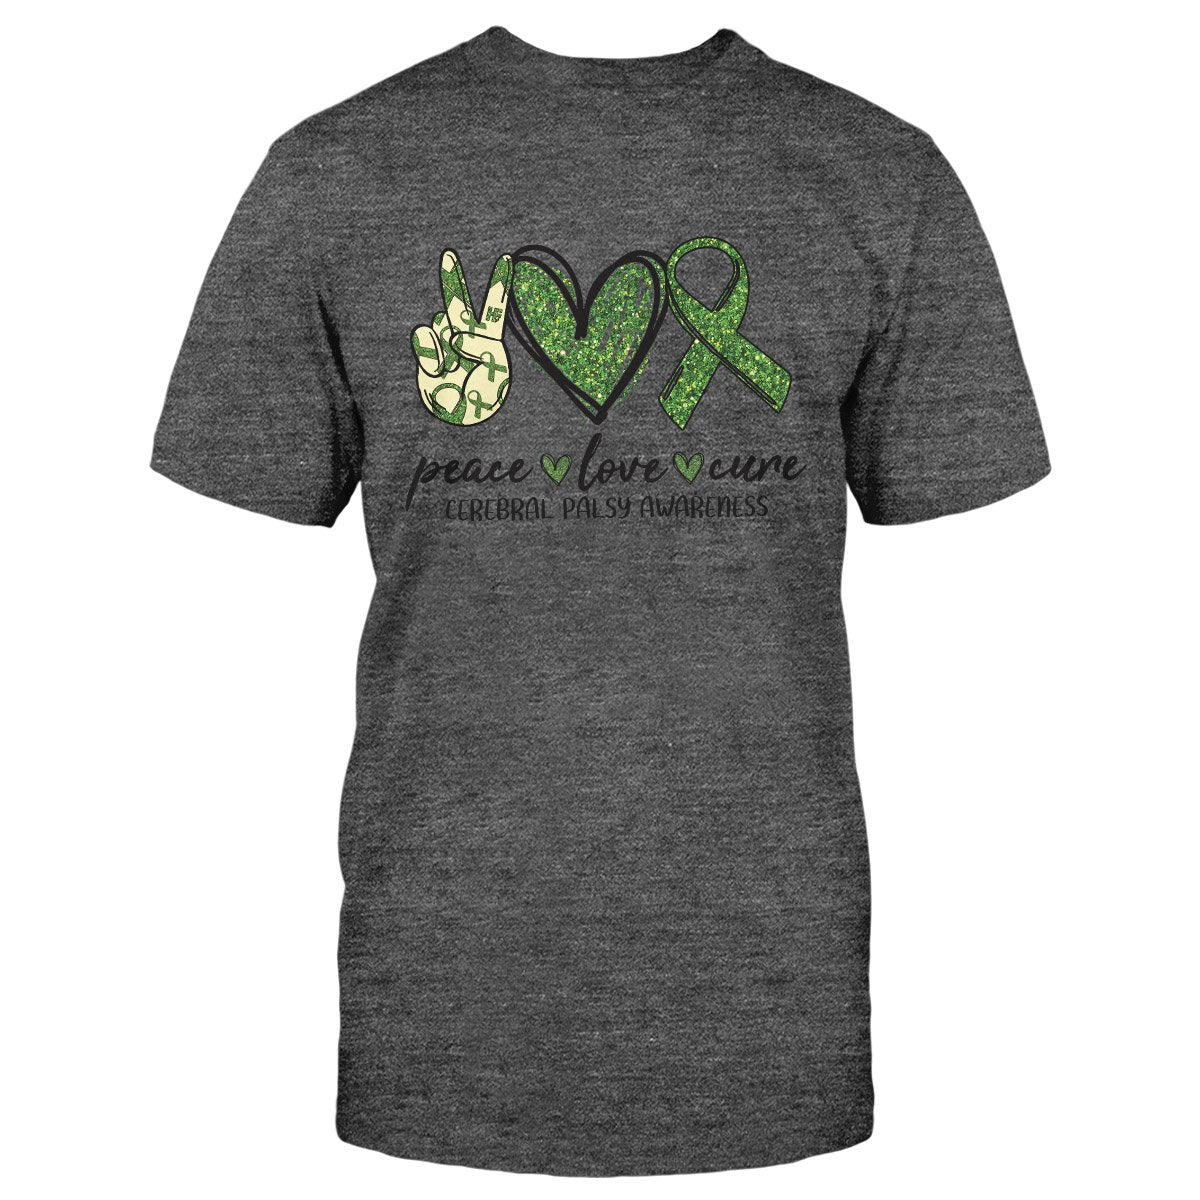 Cerebral Palsy Awareness Peace Love Cure Classic T-shirt